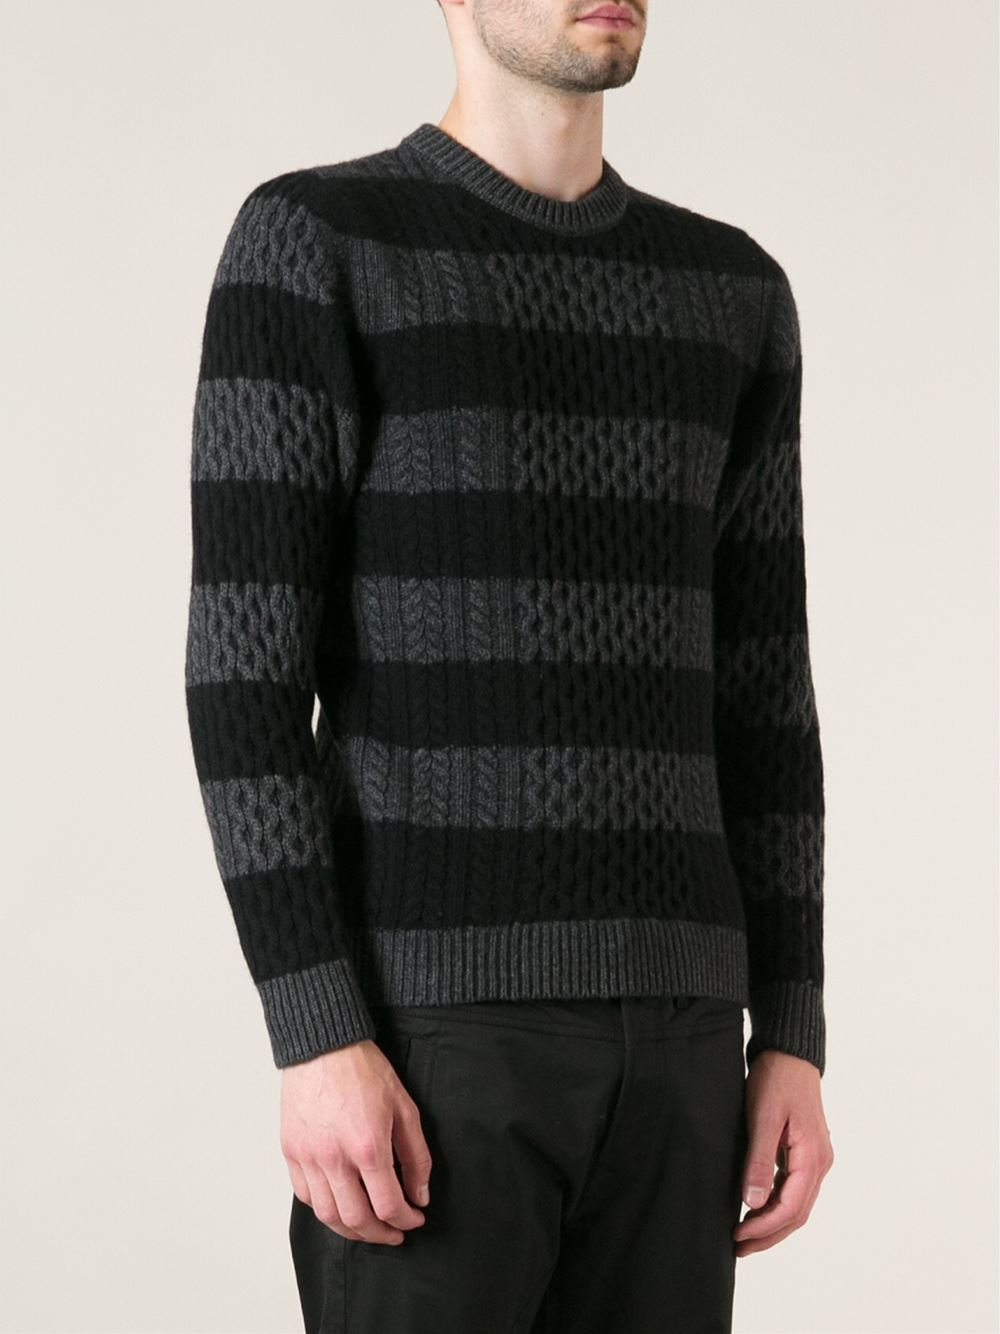 Diesel black gold Striped Cable Knit Sweater in Black for Men | Lyst